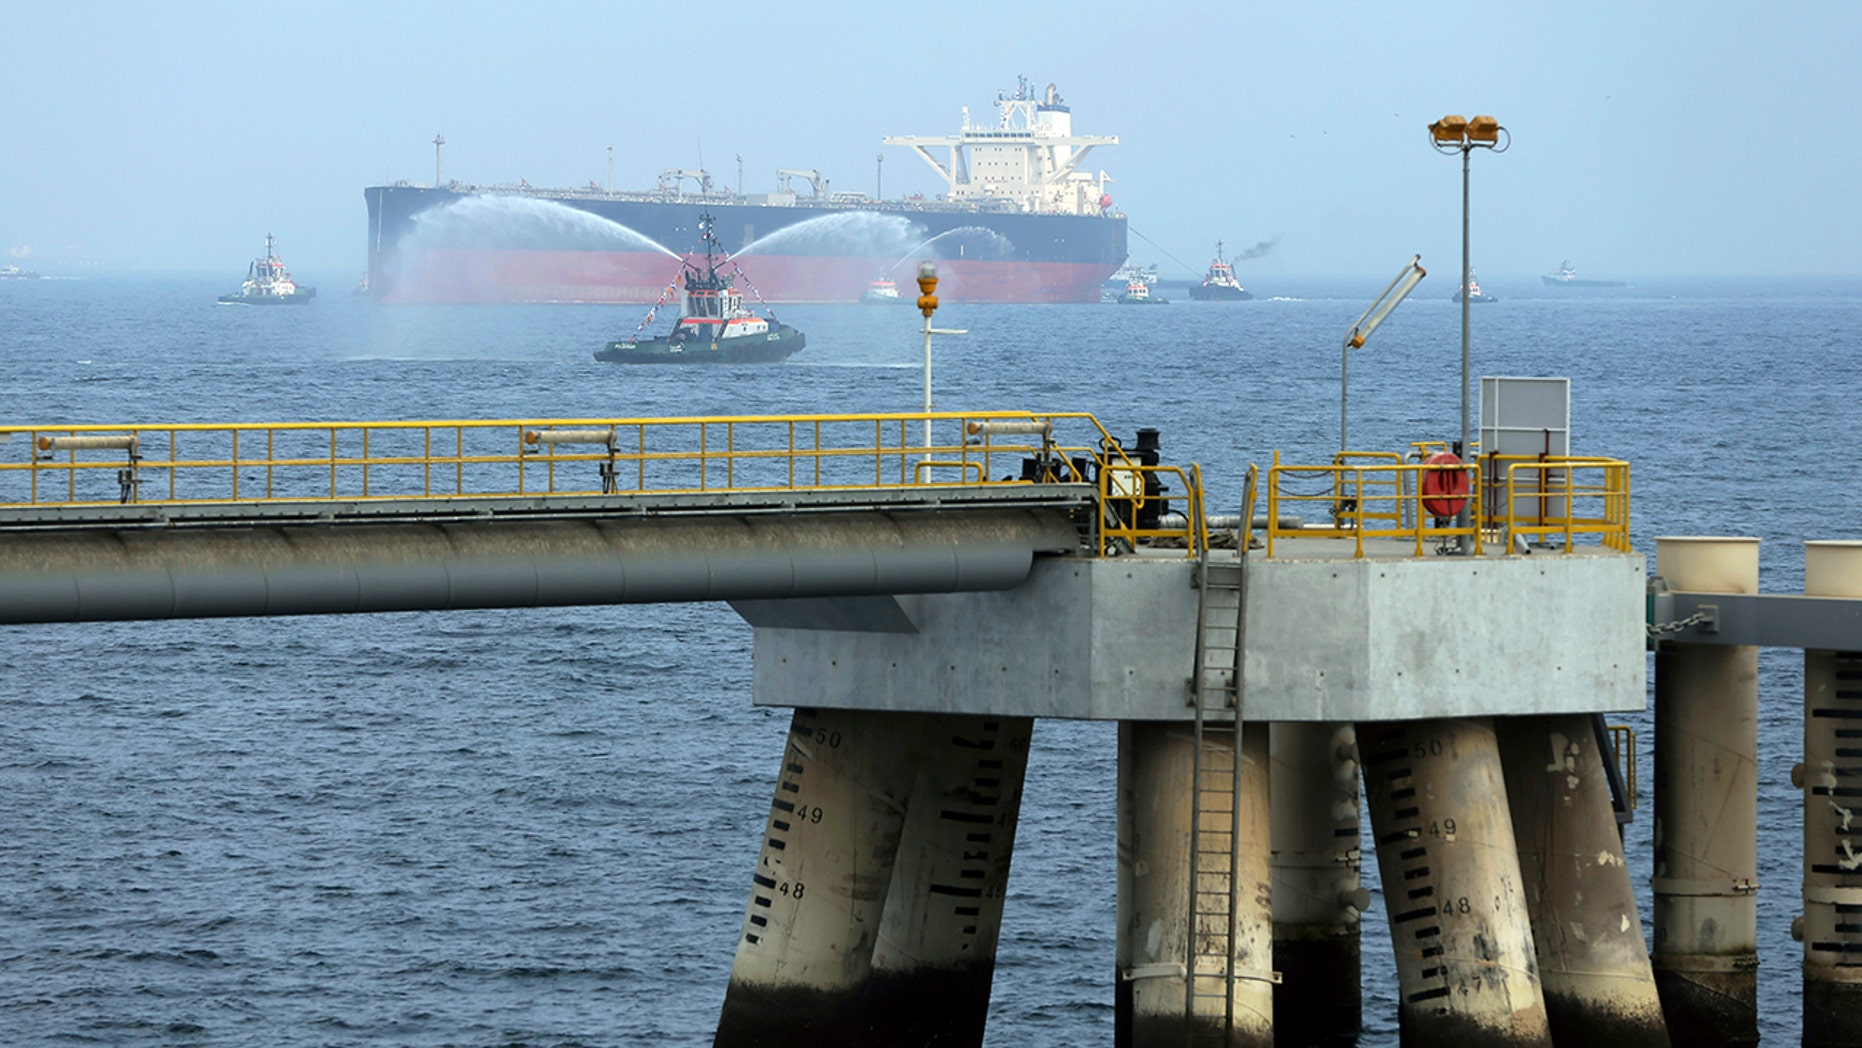 FILE - In this September 21, 2016 file photo, an oil tanker approaches the new bridge during the launch of the new $ 650 million oil plant in Fujairah, United Arab Emirates. (AP Photo / Kamran Jebreili)